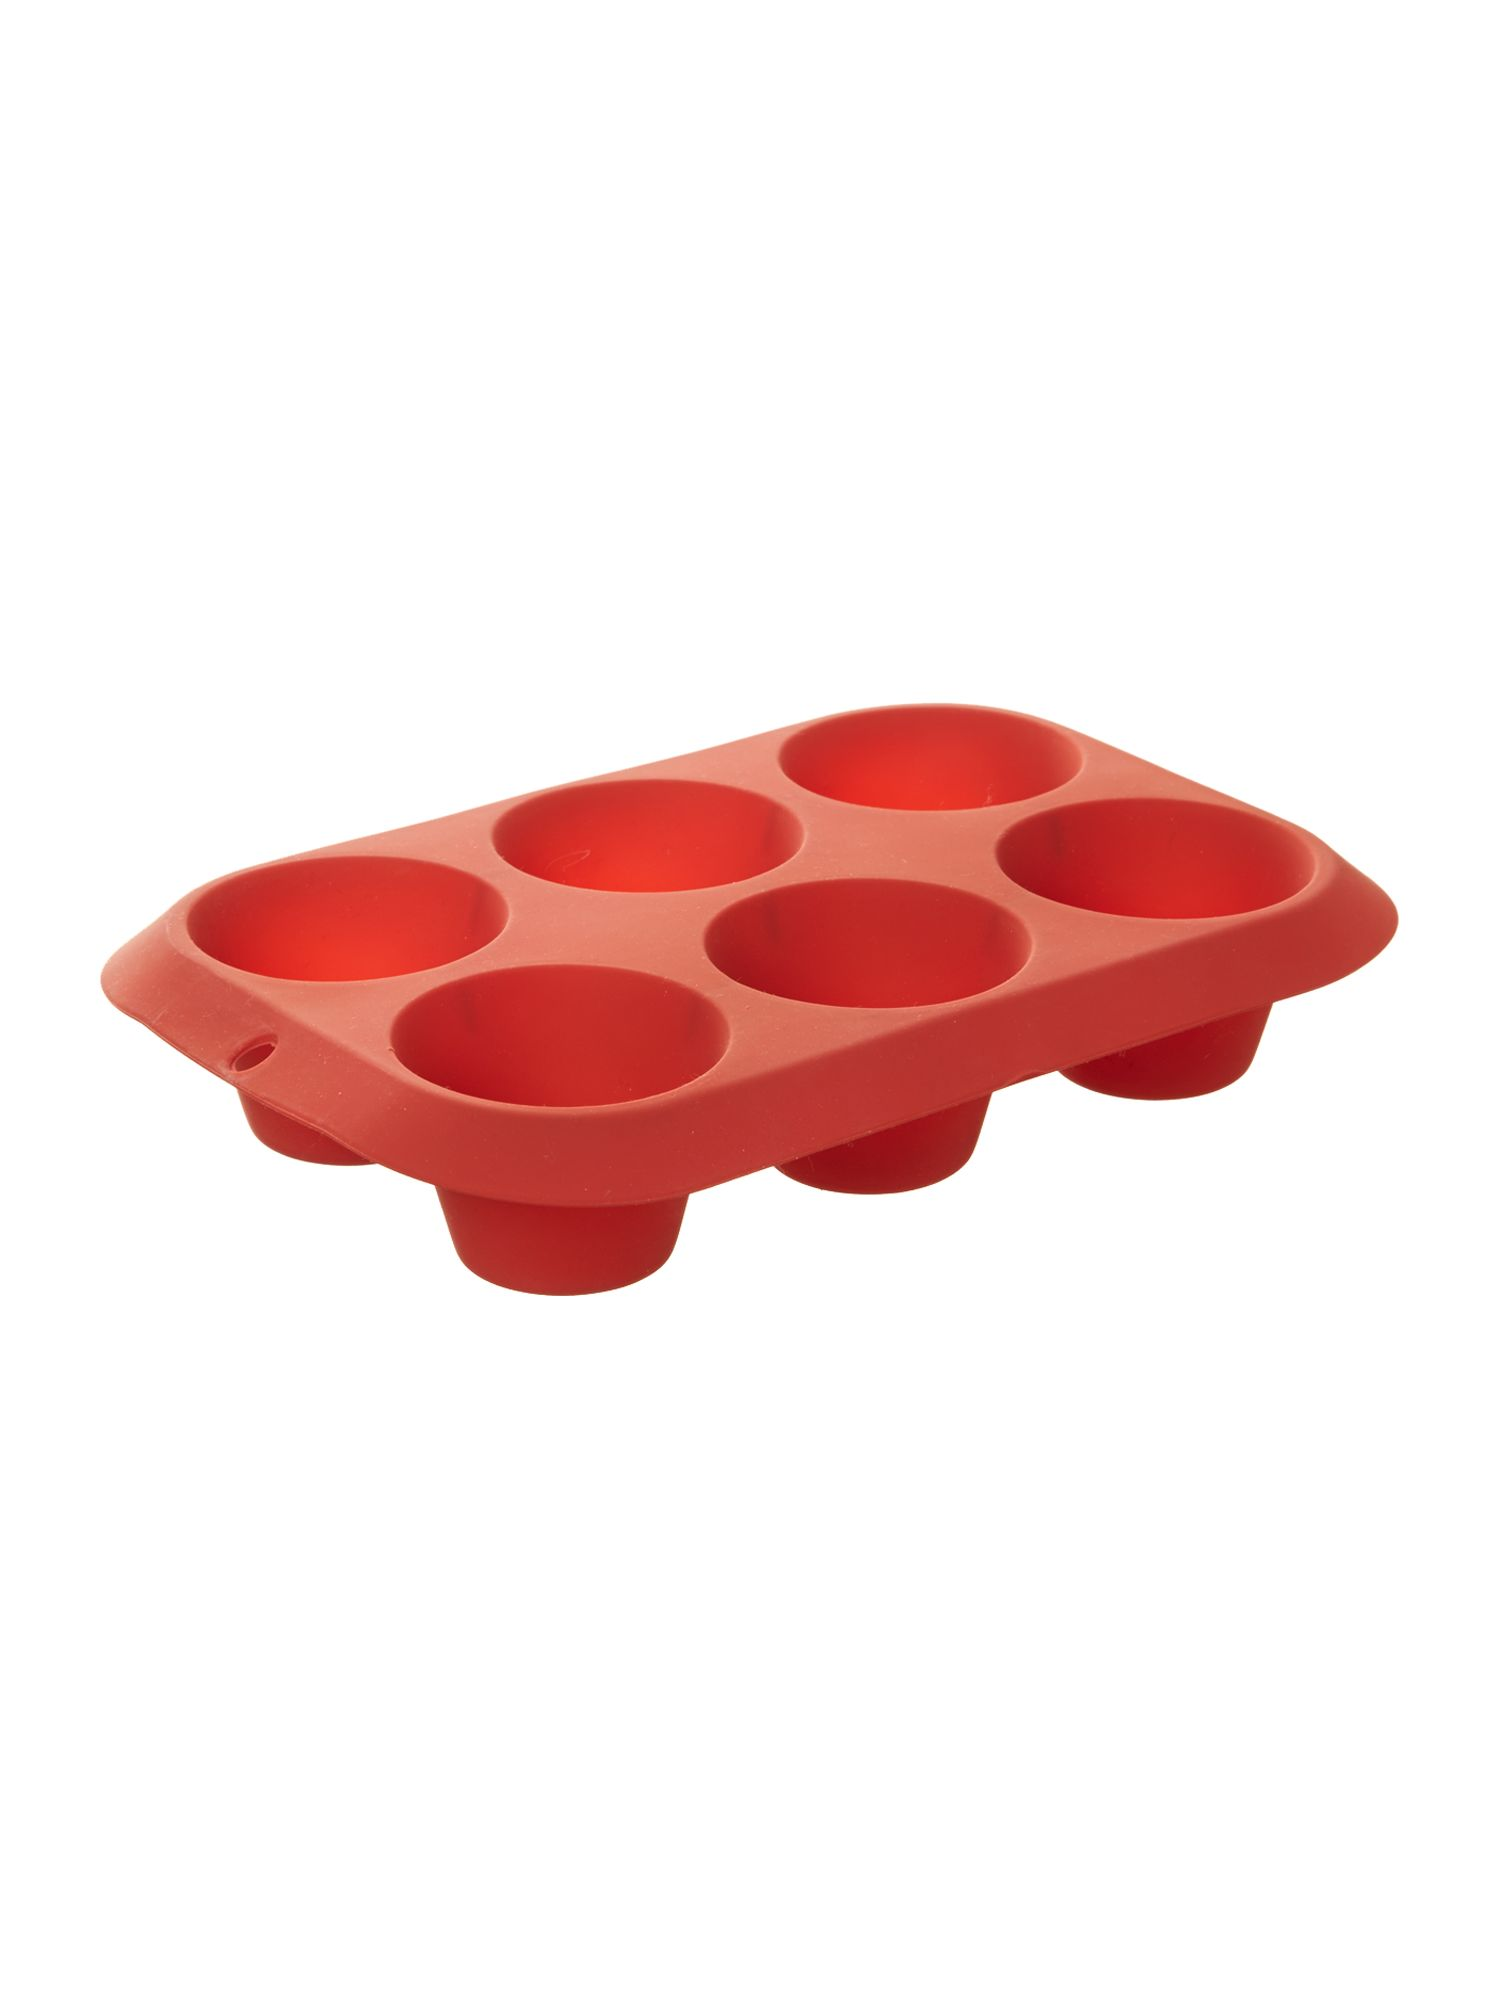 Silicone 6 cup muffin mould, red